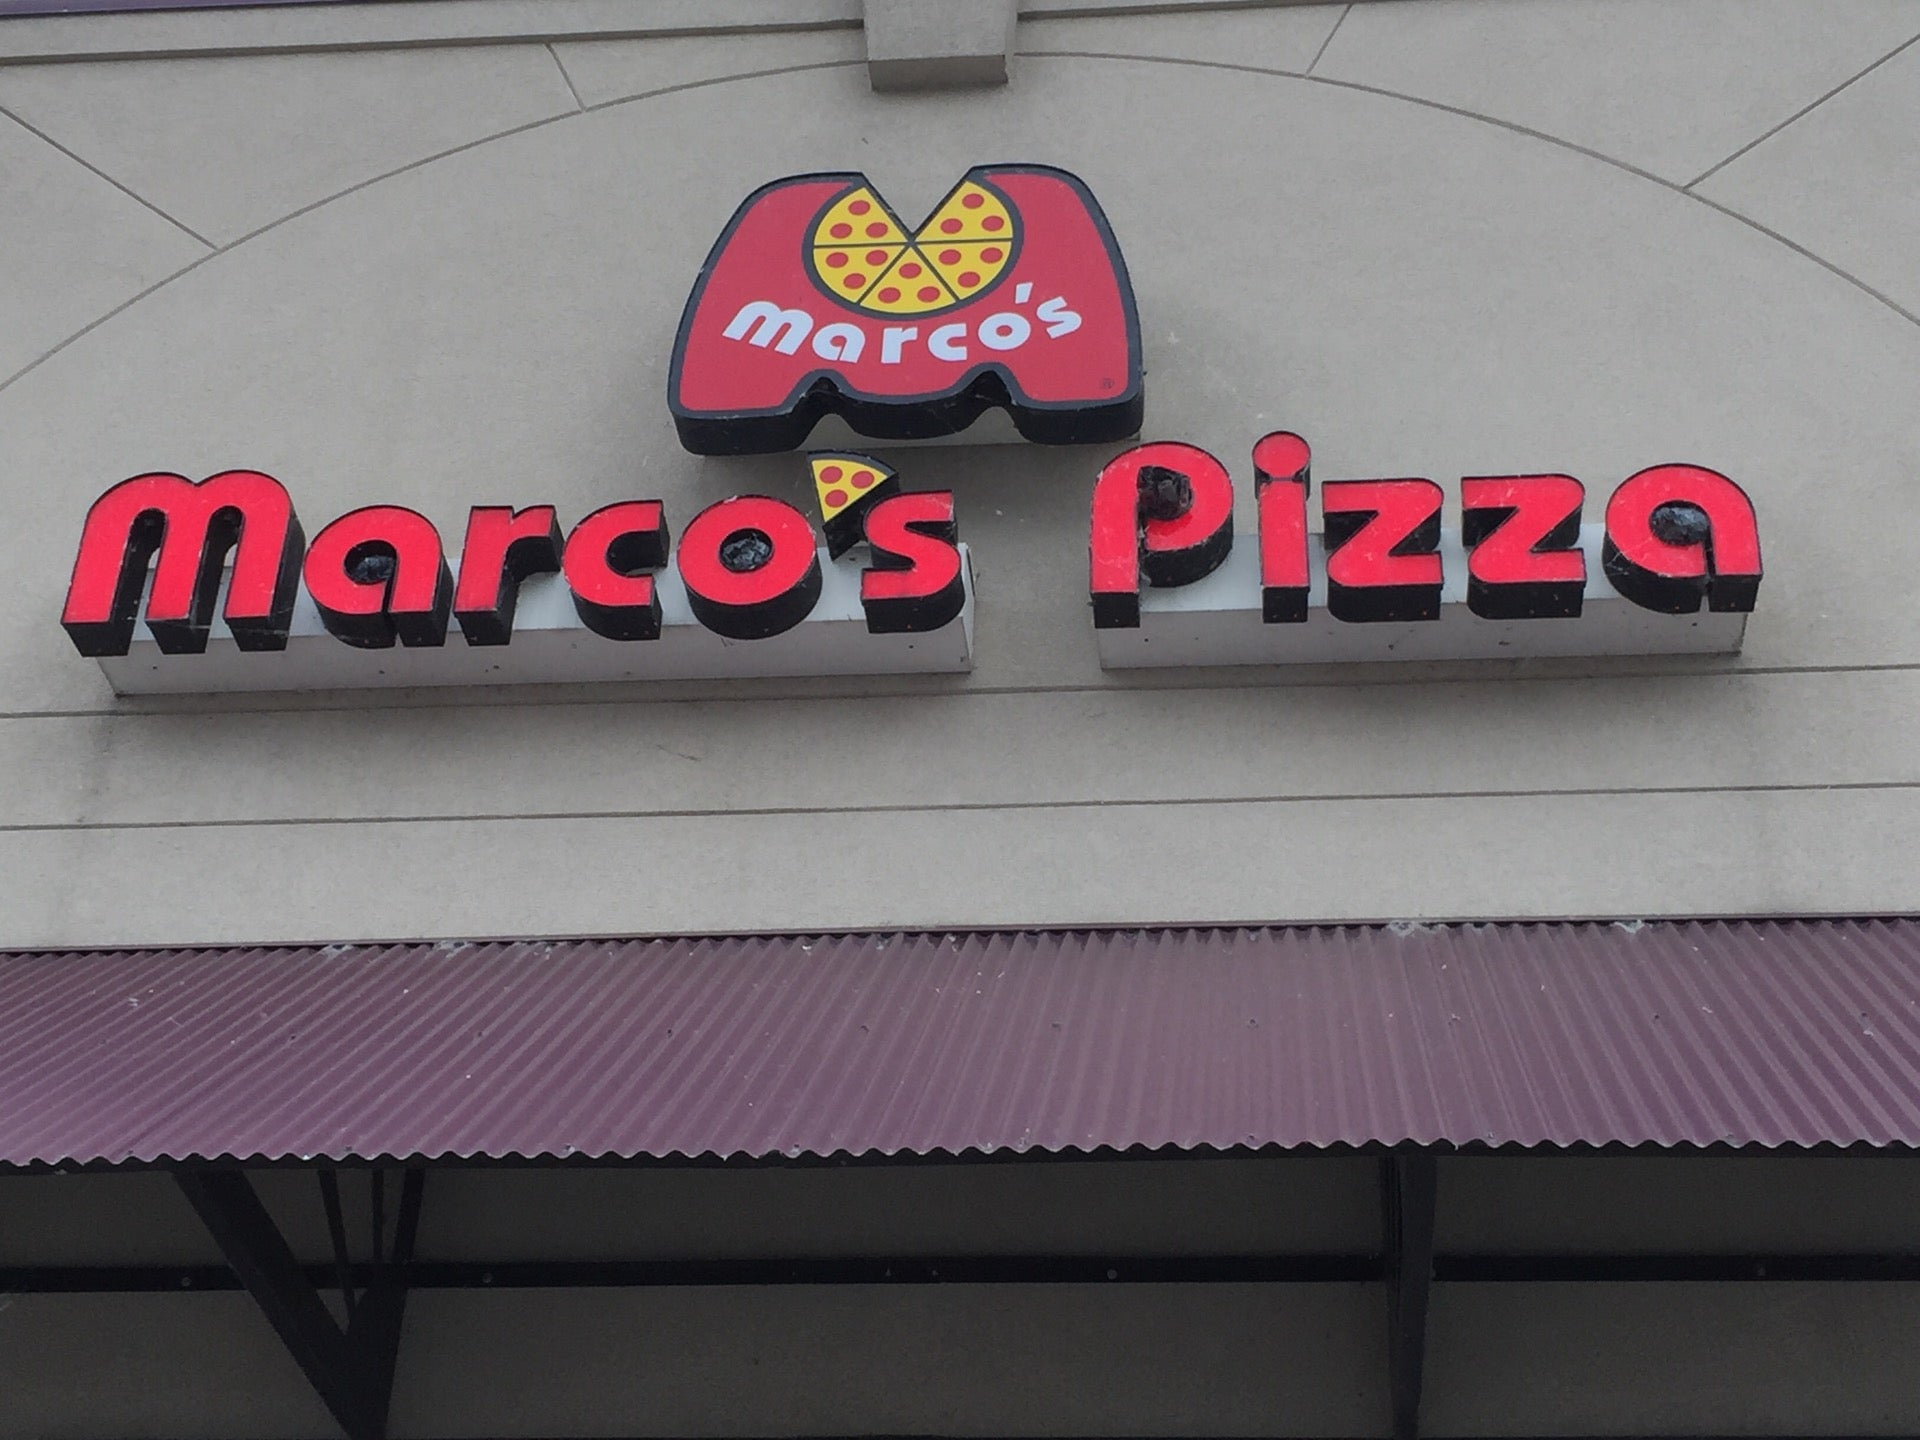 Marco's Pizza,